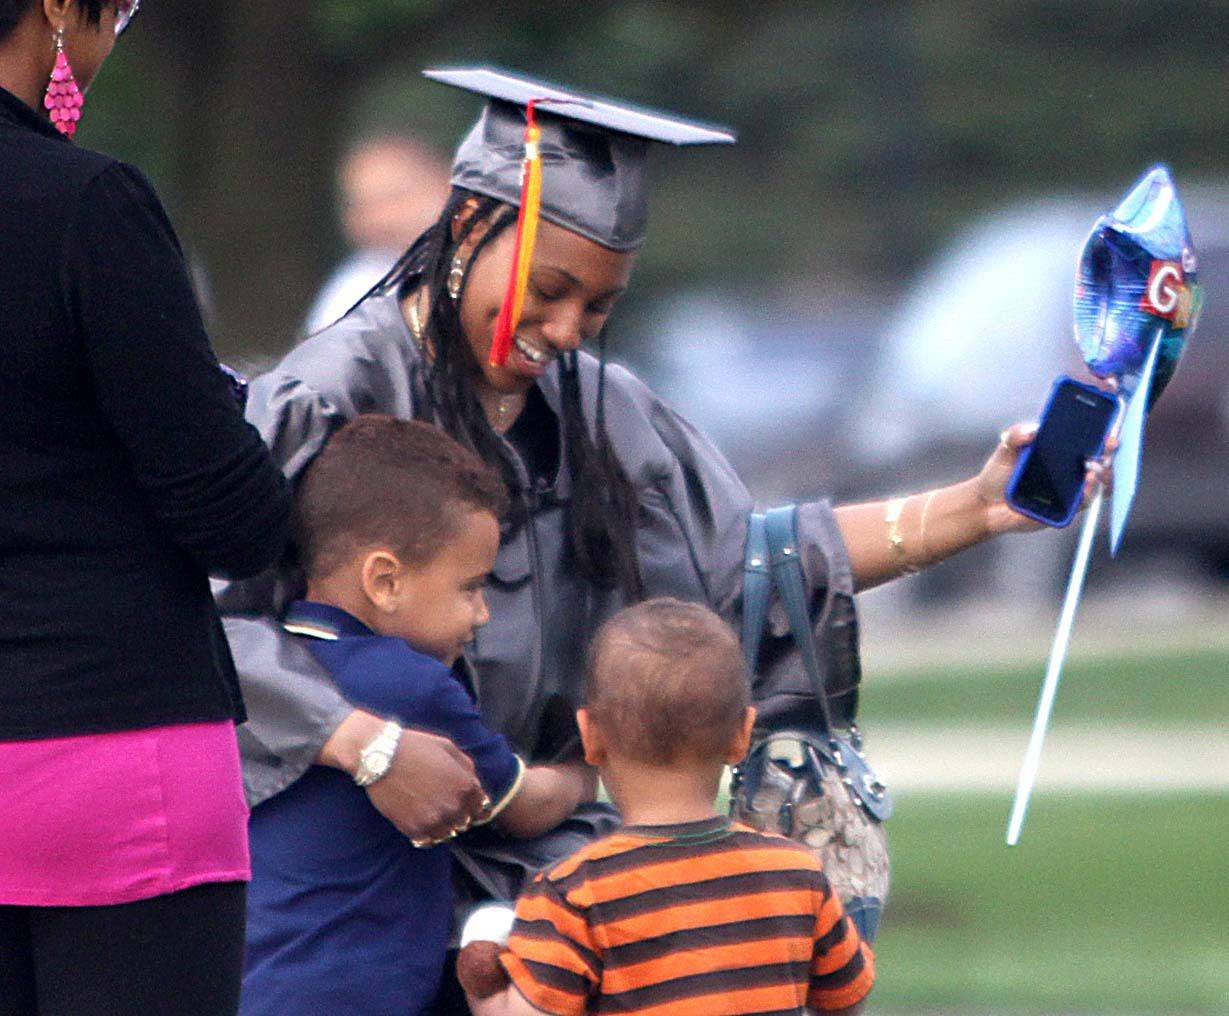 Erika Drane of Aurora greets her nephews, also from Aurora, Shane Gibson, 5, and Sylas Gibson, 2, just before commencement. Drane received an Associate in Science degree on Thursday night.